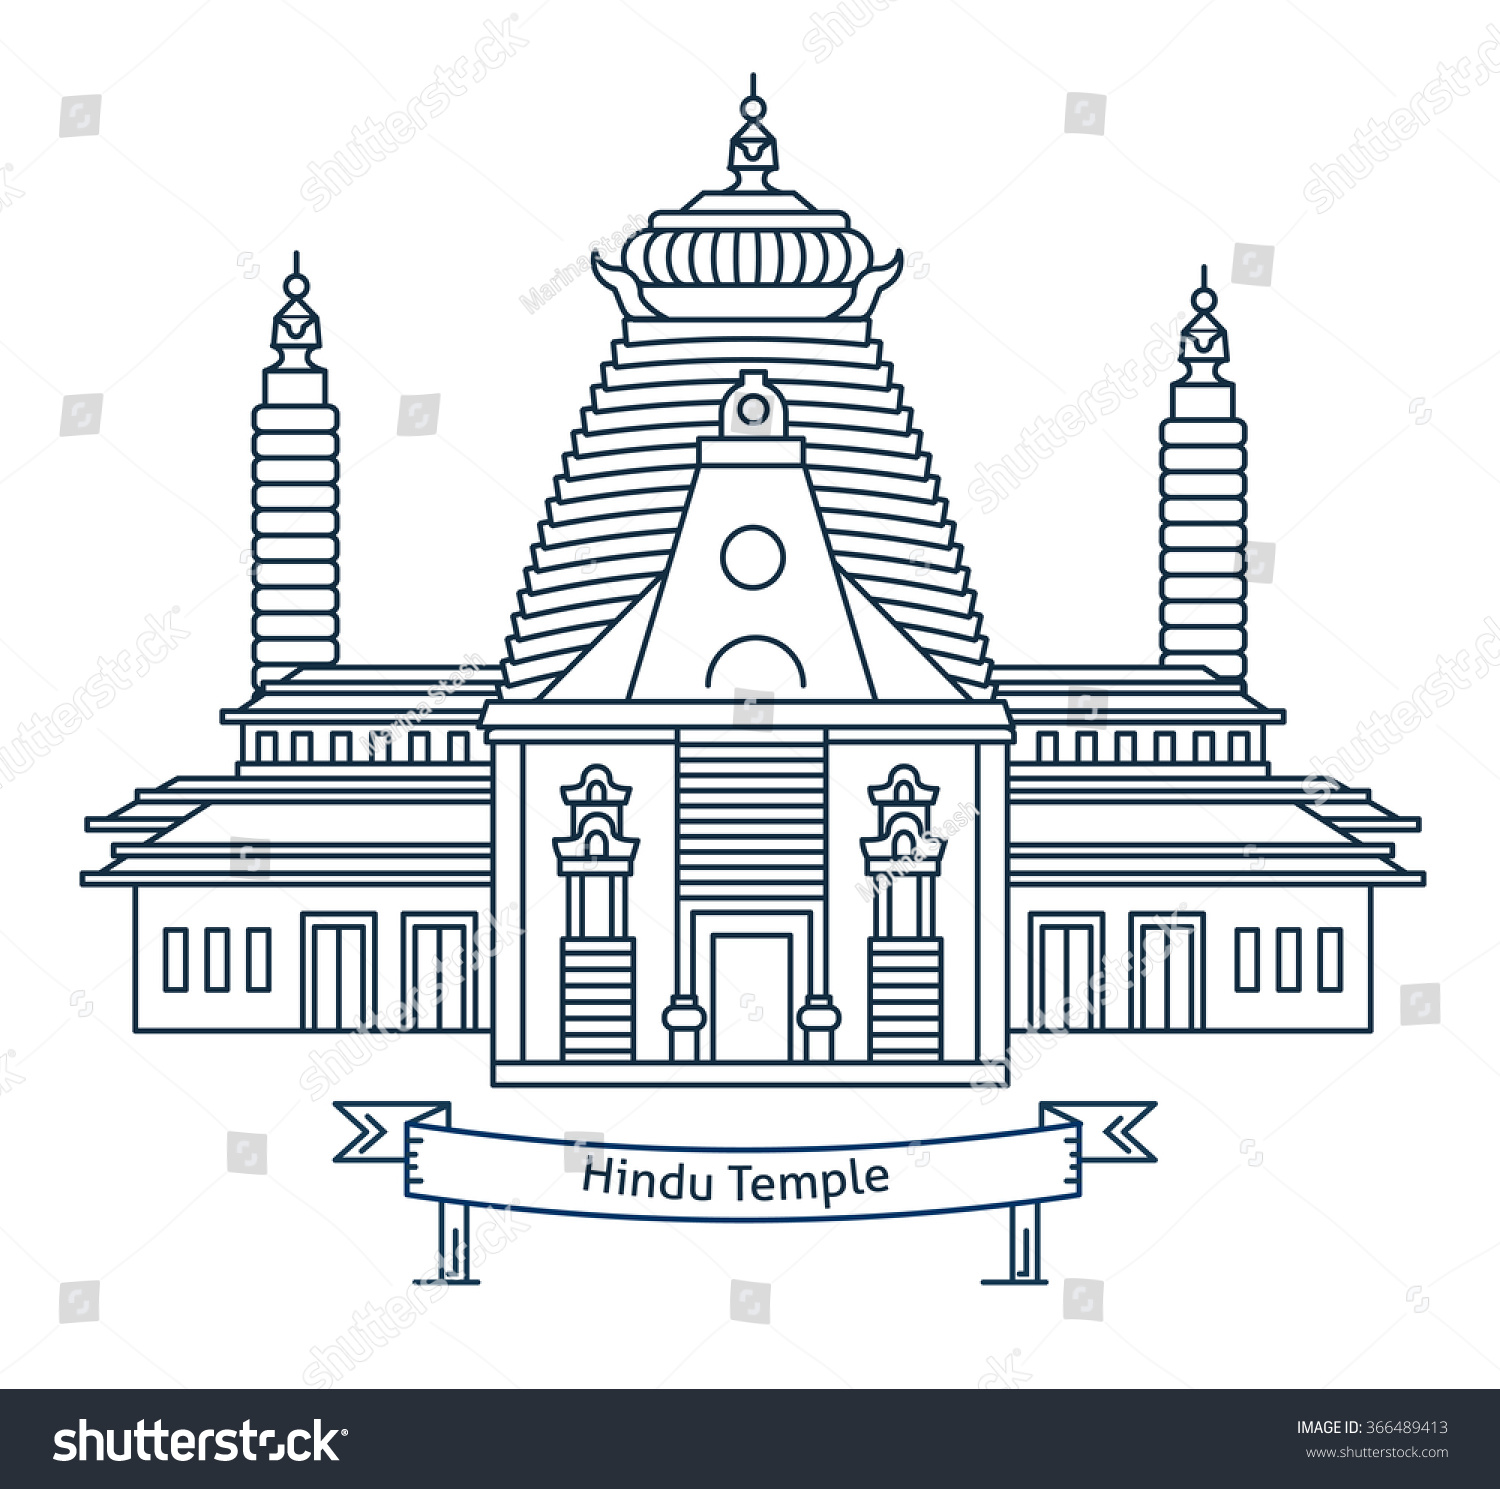 Hindu temple hinduism symbol indian temple stock vector 366489413 hindu temple hinduism symbol indian temple flat line vector architecture illustration outlined biocorpaavc Gallery